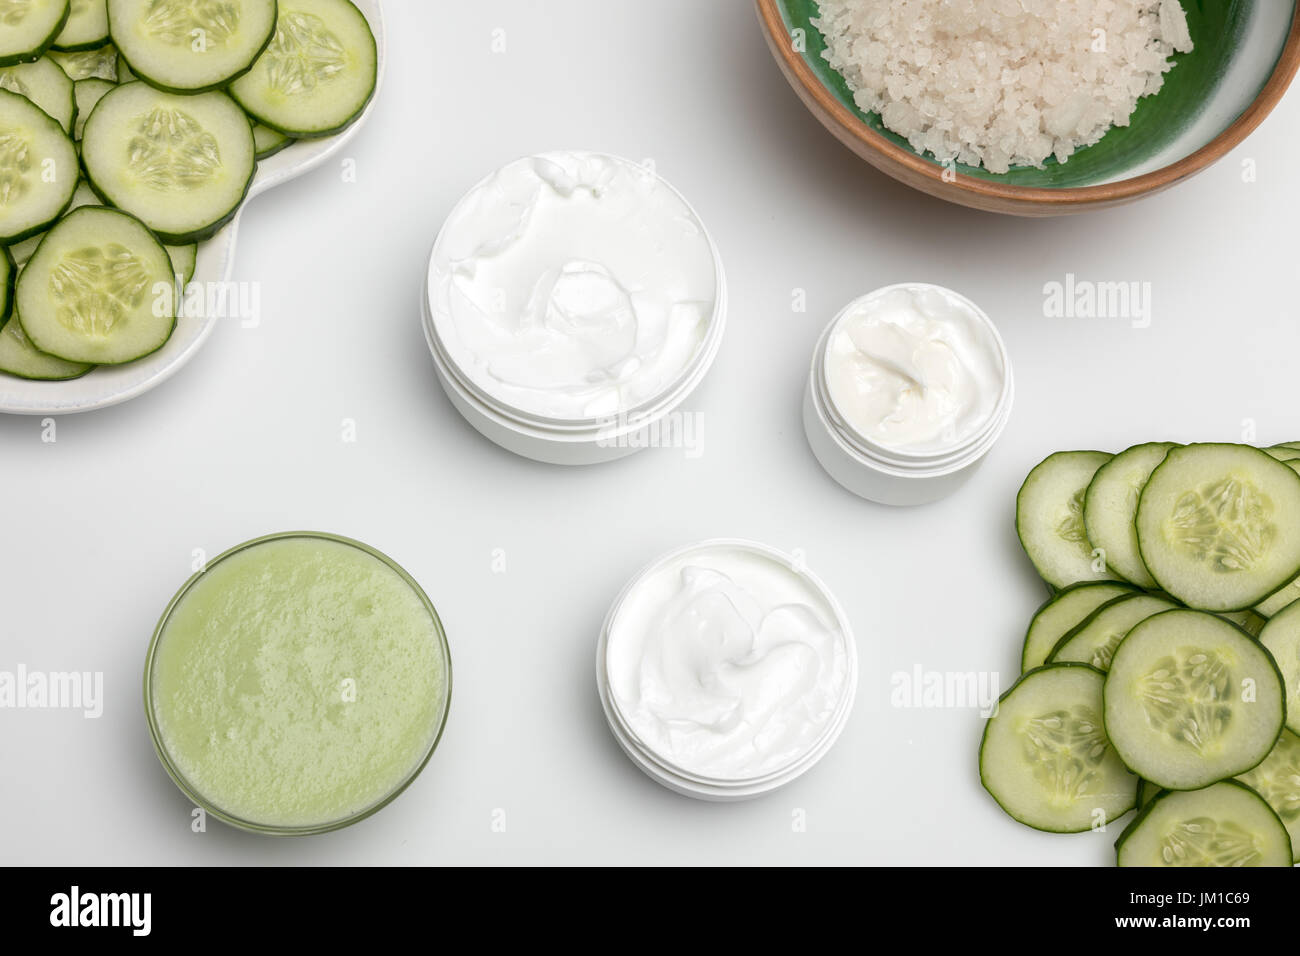 Top view of facial cream in containers and cucumber slices isolated on white - Stock Image